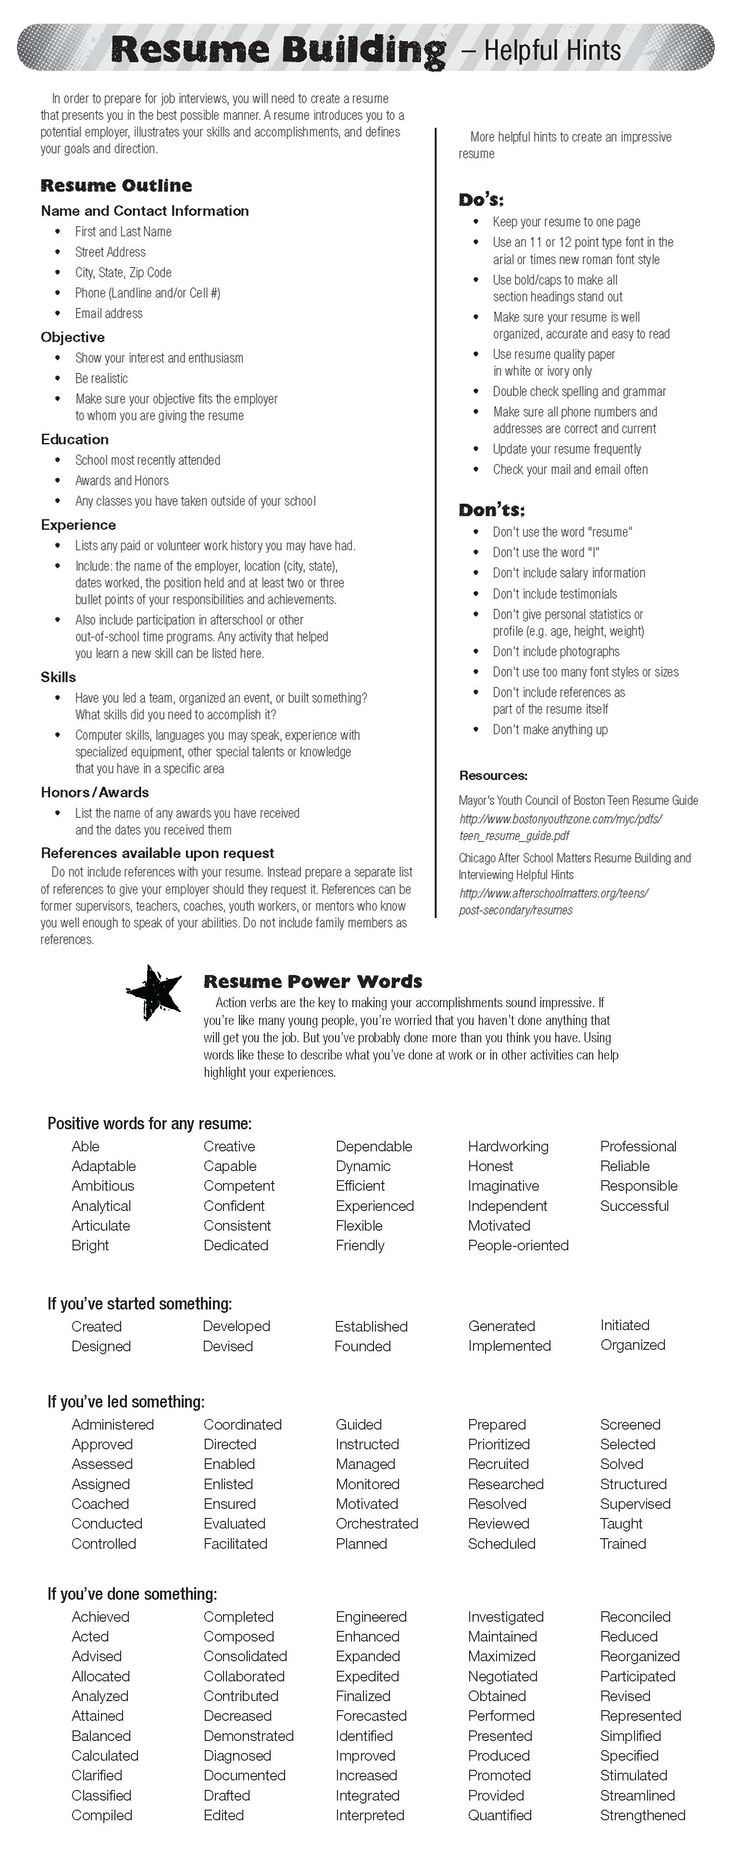 Opposenewapstandardsus  Pleasing  Ideas About Resume On Pinterest  Cv Format Resume Cv And  With Exciting  Ideas About Resume On Pinterest  Cv Format Resume Cv And Resume Templates With Charming No Job Experience Resume Also Summary Of Qualifications For Resume In Addition Cocktail Waitress Resume And Resume Summary Examples Entry Level As Well As Resume Program Additionally Objectives Resume From Pinterestcom With Opposenewapstandardsus  Exciting  Ideas About Resume On Pinterest  Cv Format Resume Cv And  With Charming  Ideas About Resume On Pinterest  Cv Format Resume Cv And Resume Templates And Pleasing No Job Experience Resume Also Summary Of Qualifications For Resume In Addition Cocktail Waitress Resume From Pinterestcom